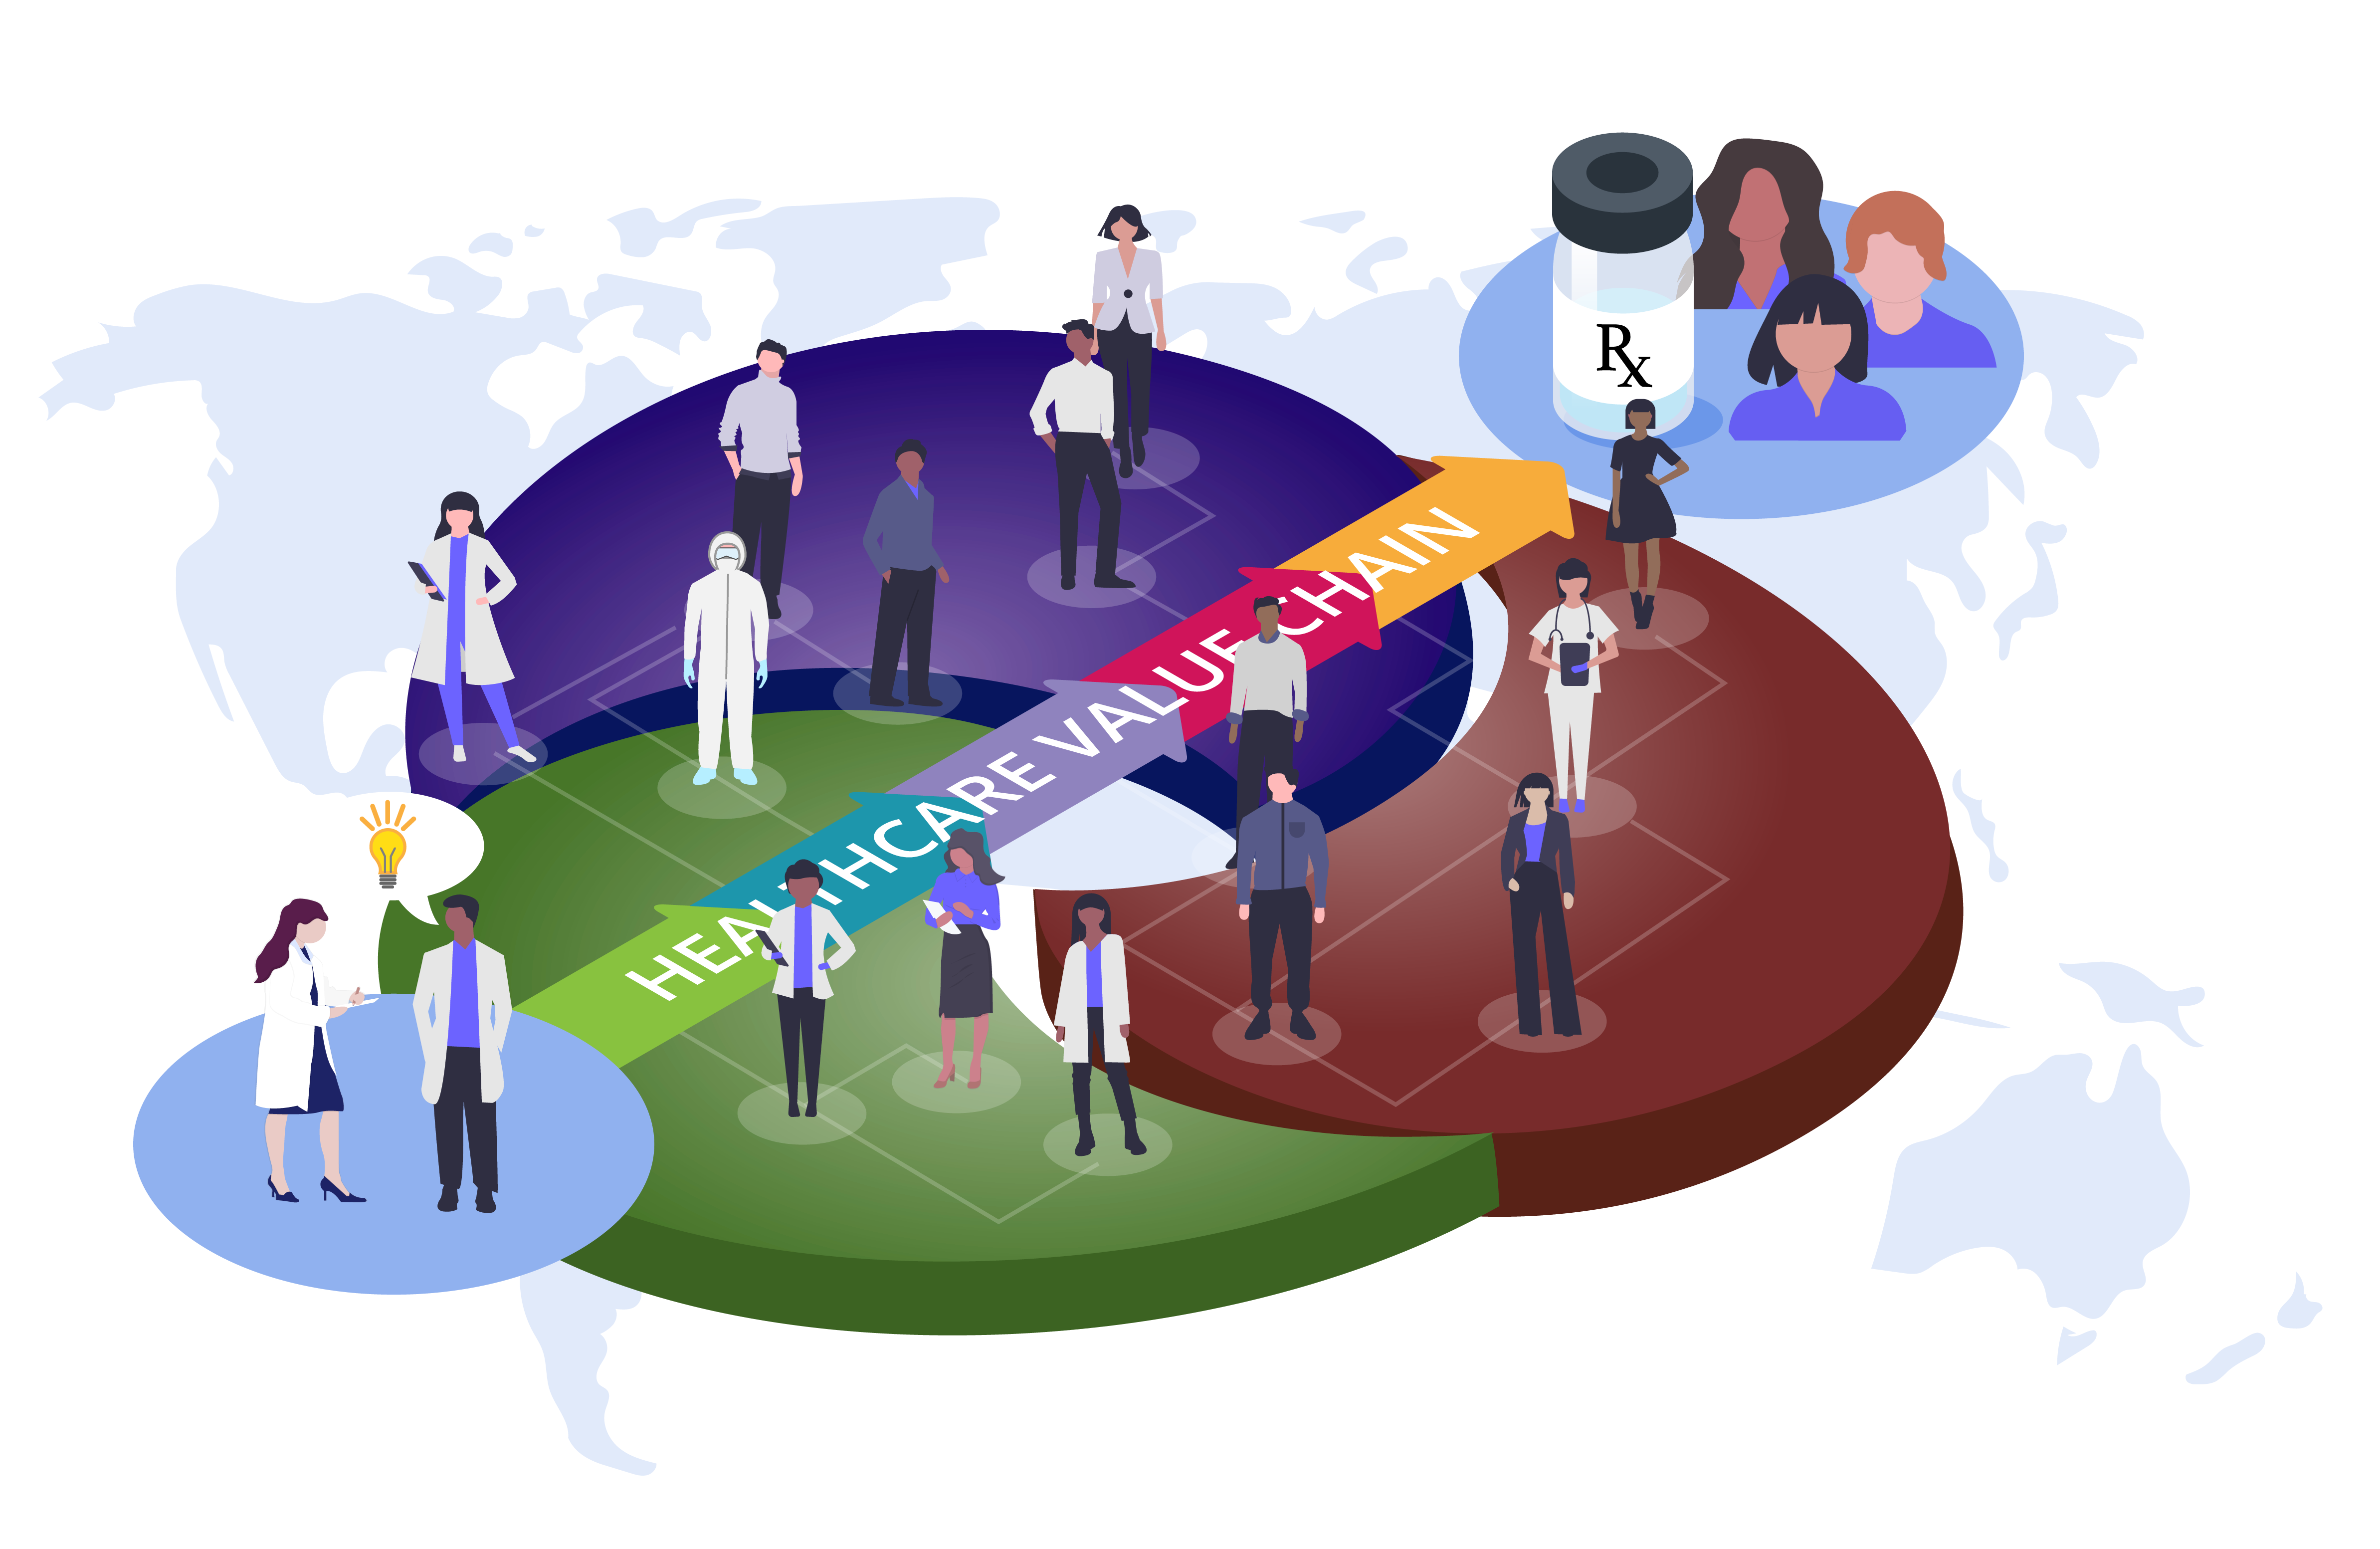 "Graphic illustration showing two biomedical scientists or doctors on one side of a large circle that is the CBI logo with many different people of the healthcare industry layered on it, from these two people a multi-colored arrow line goes across the circle with the worlds ""healthcare value chain"" and ends on the other side of the circle where a medicine vial and several people of different ethnicities and genders are together. Under it all is a map of the world."